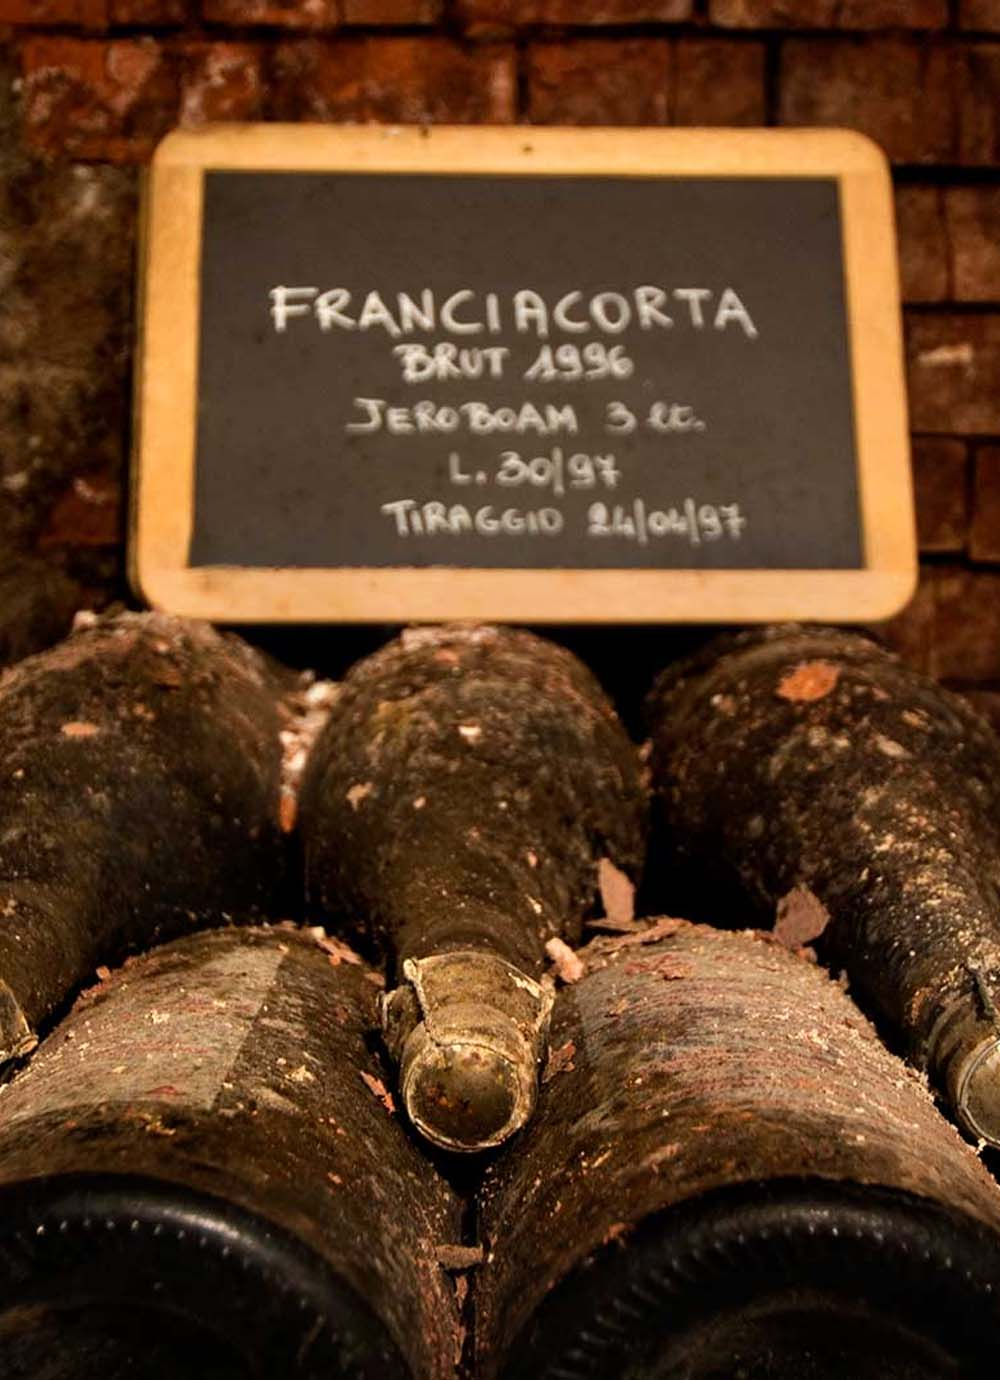 Tours - Tasting tour in the Franciacorta Valley (photo 7)